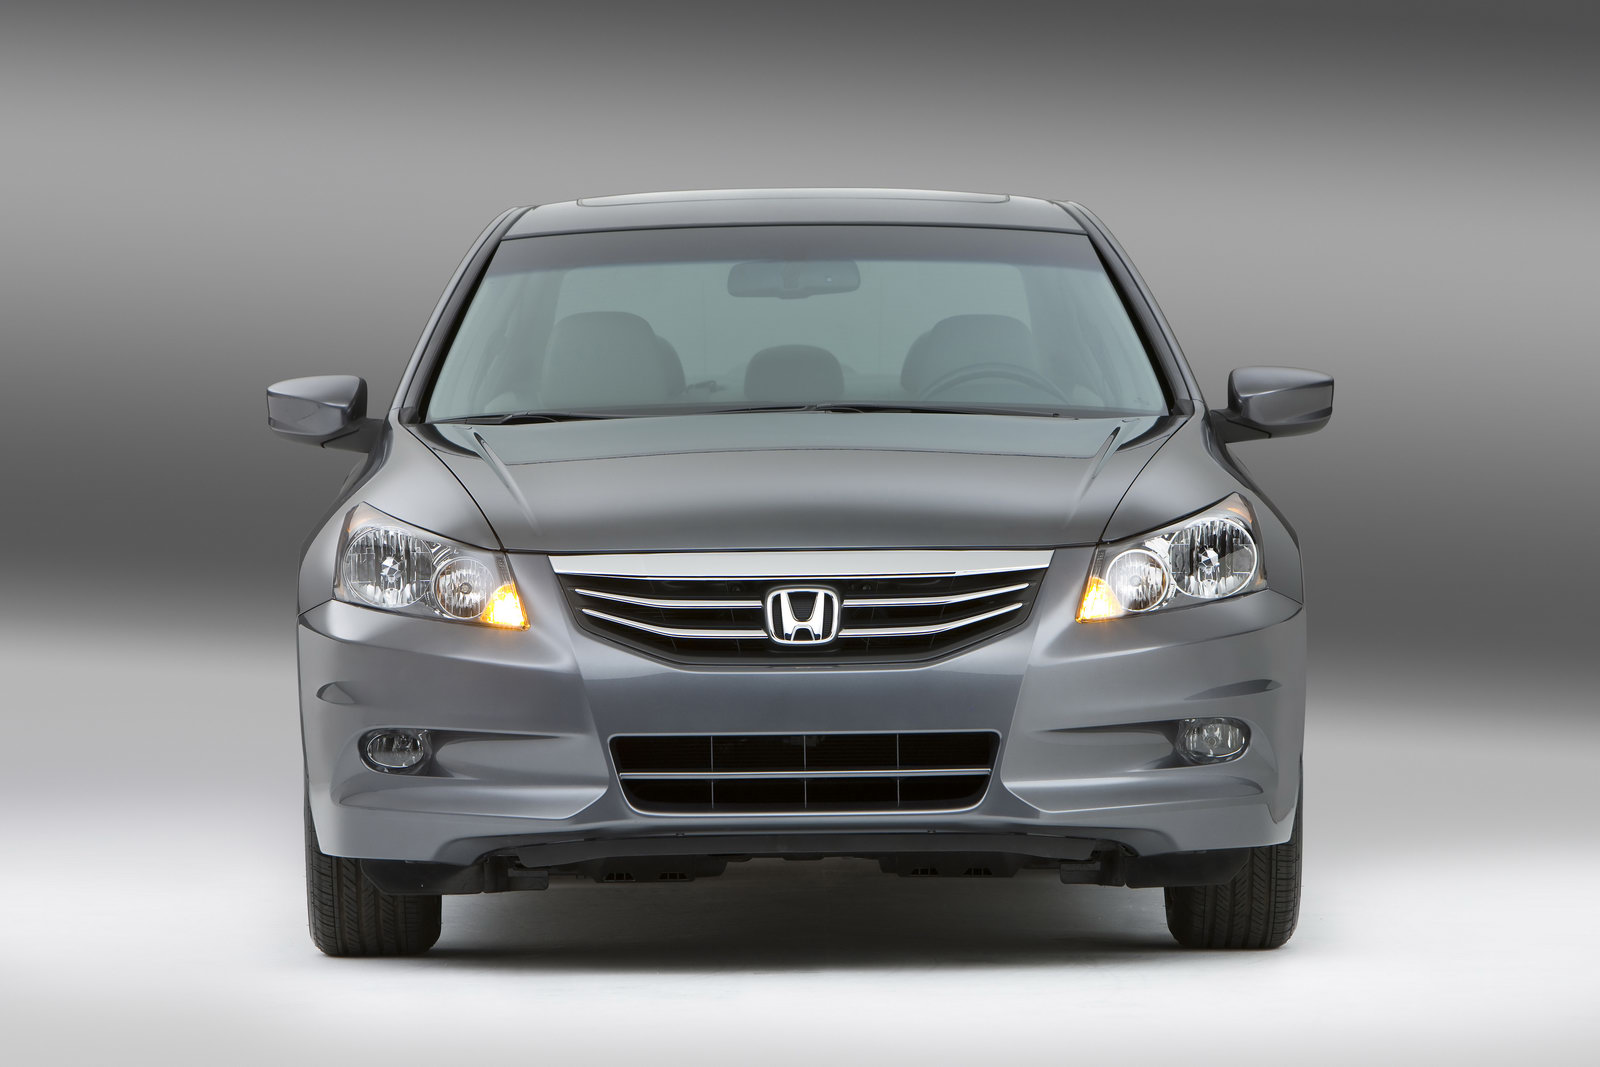 Honda Civic, The Best Choice for both Honda 2011 Sedan & Coupe #1